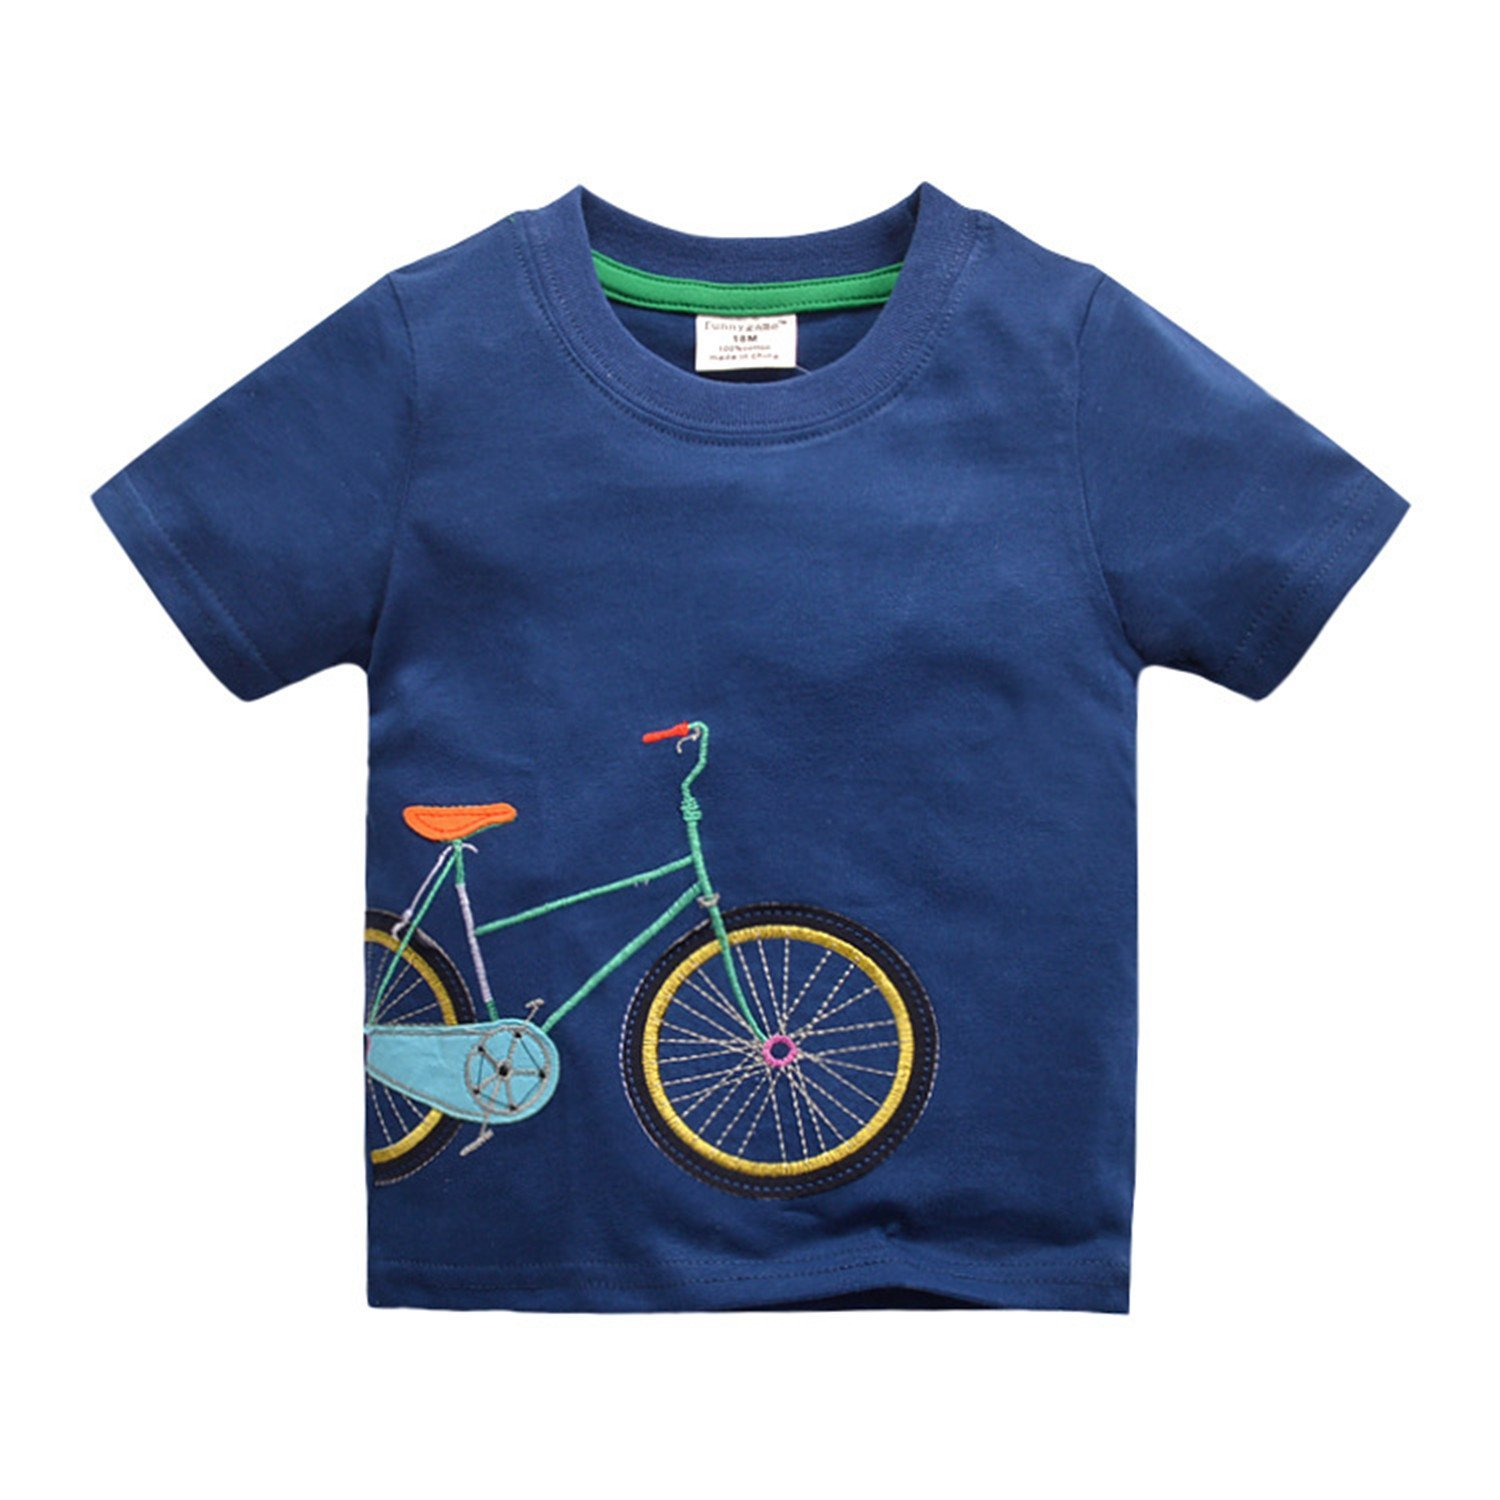 Joddie Haha Cotton Boyss New New Summer Style Children Clothing Kids Clothing Tops New Fashion Bicycle Pattern Boys T Shirts